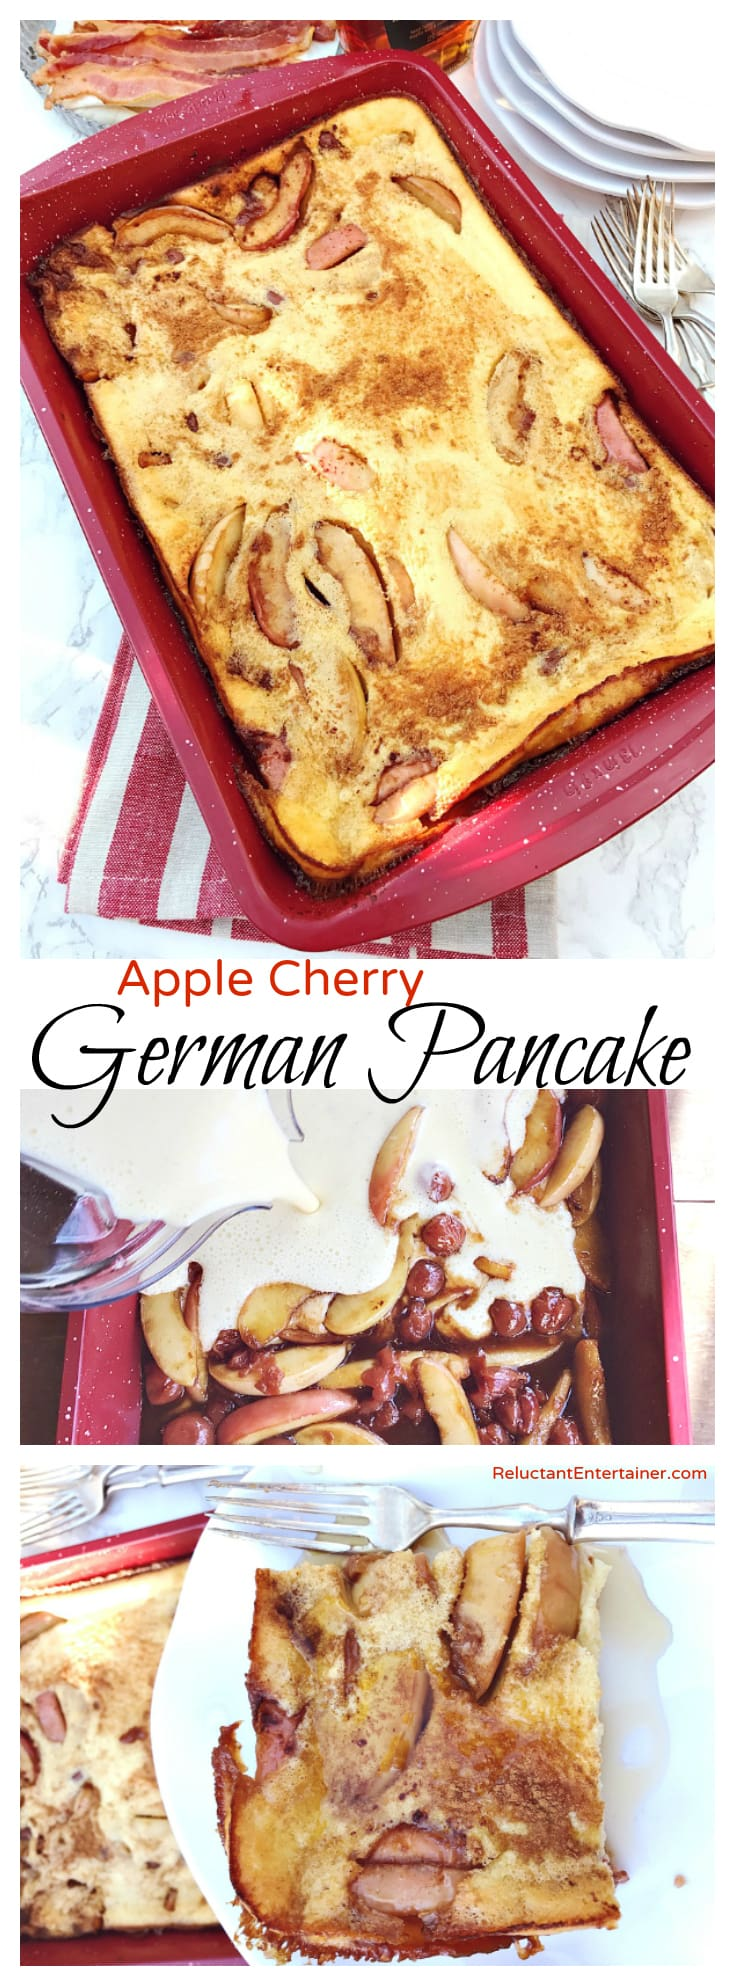 Apple Cherry German Pancake Recipe at ReluctantEntertainer.com